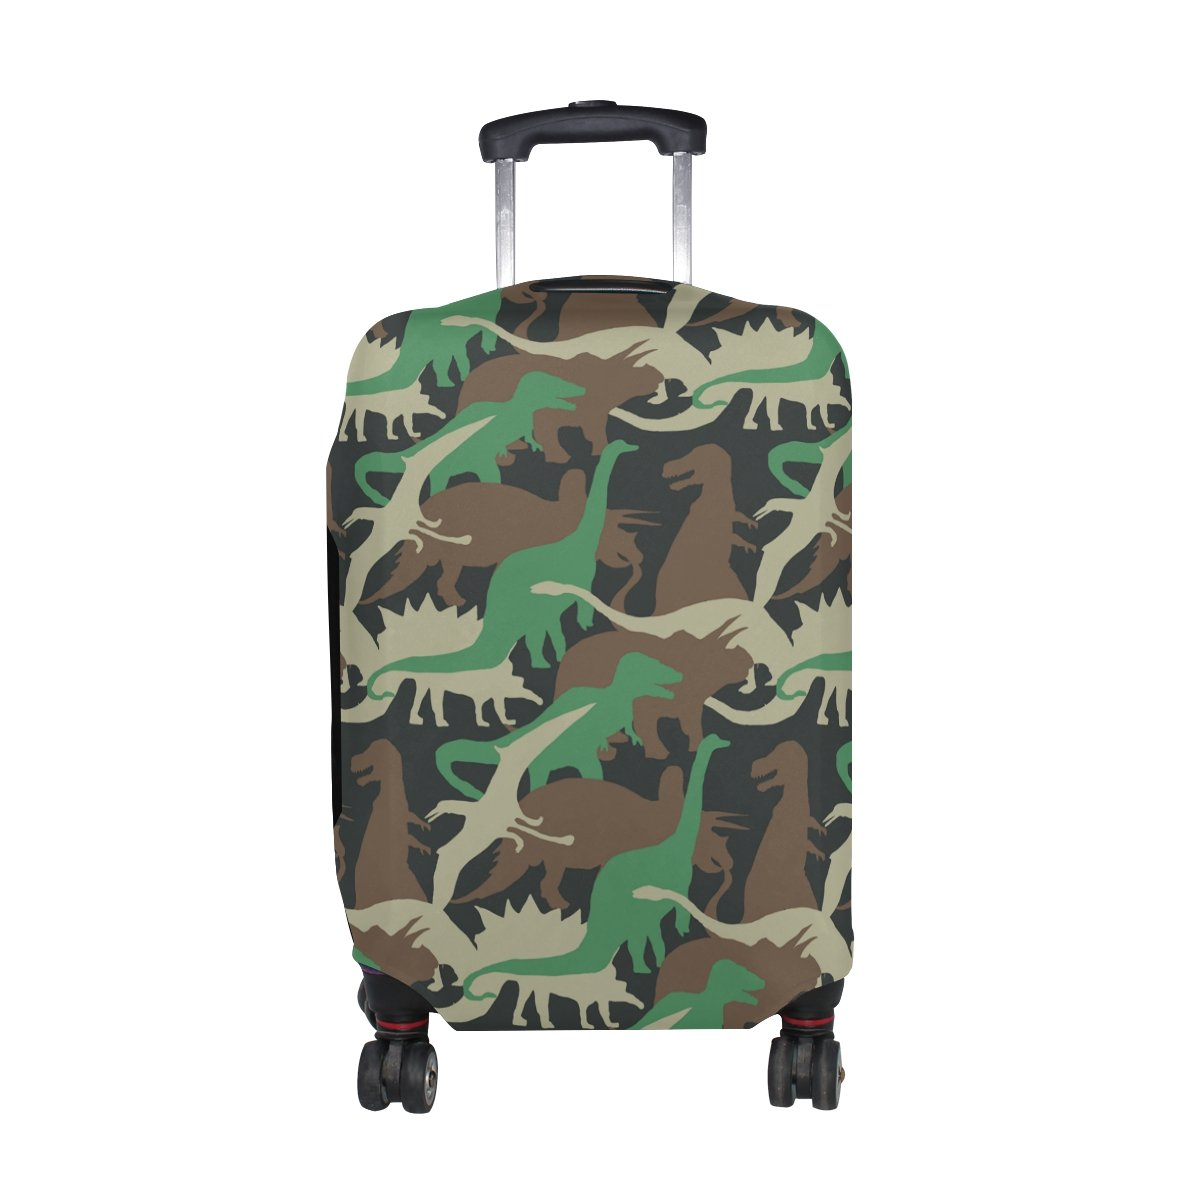 Cute Cartoon Dinosaur Pattern Print Luggage Cover Travel Suitcase Protector Fits 23-26 Inch Luggage